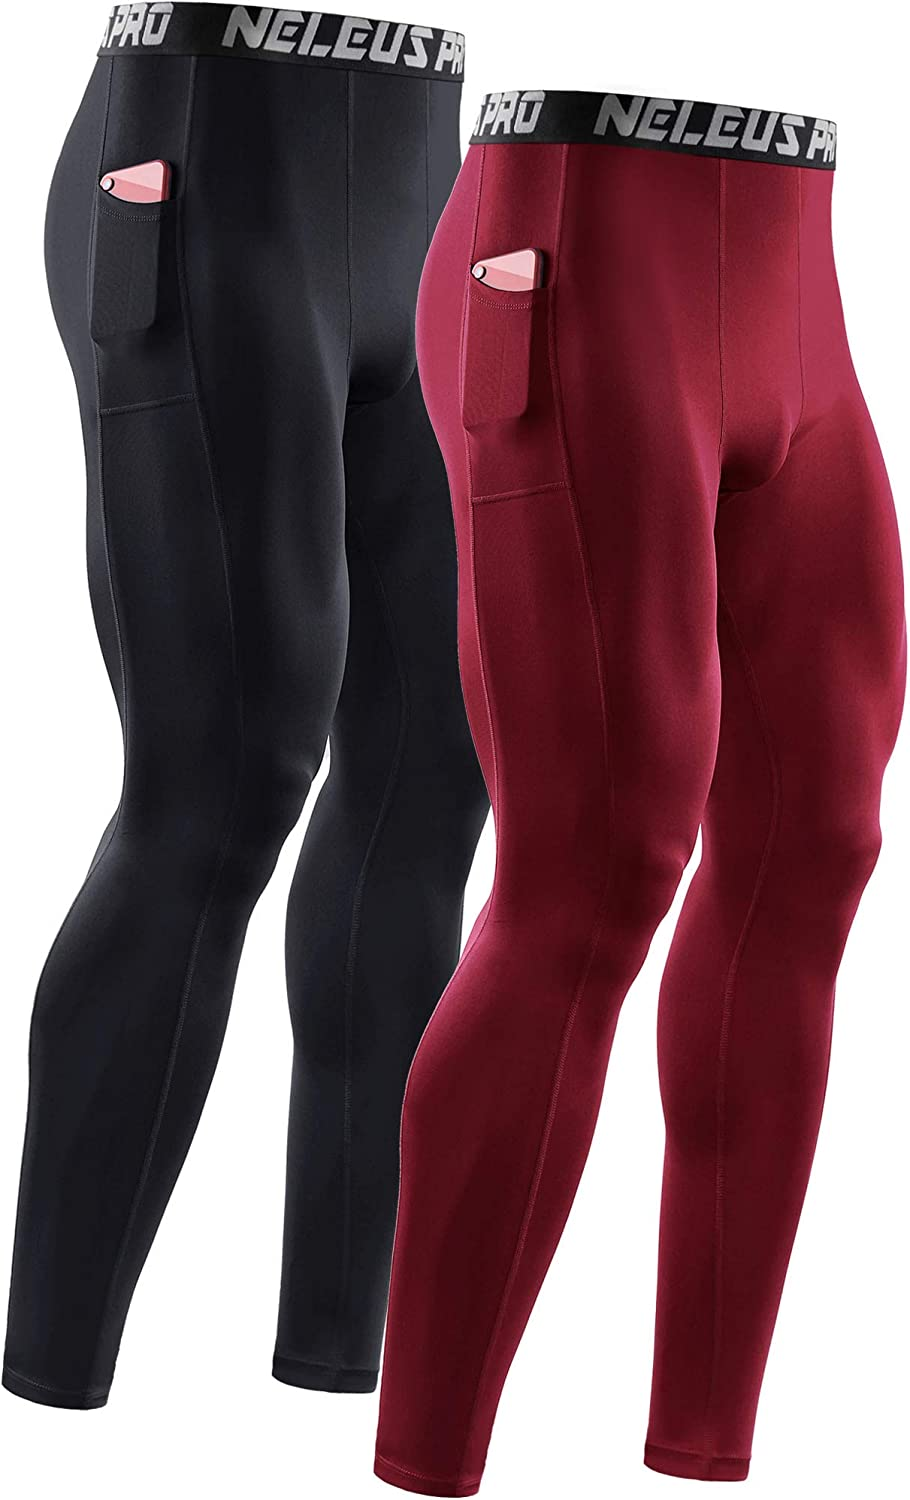 Japan Maker New Max 69% OFF Neleus Men's Dry Fit Compression Pants Running Baselayer Tights